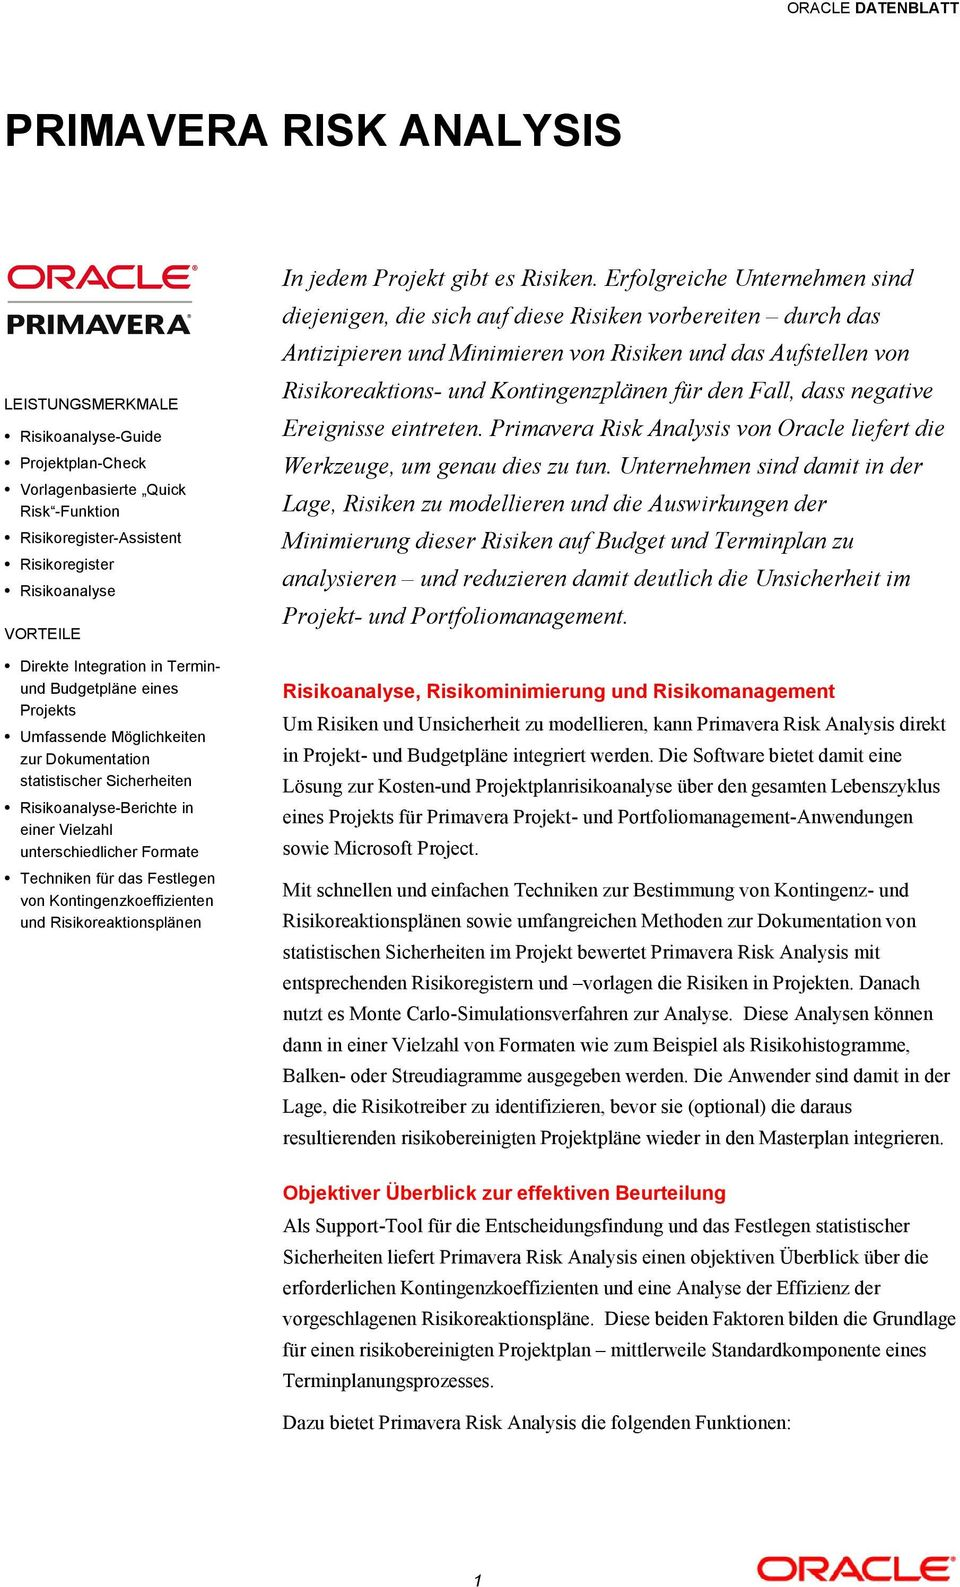 Projektplan-Check Vorlagenbasierte Quick Risk -Funktion Risikoregister-Assistent Risikoregister Risikoanalyse VORTEILE Direkte Integration in Terminund Budgetpläne eines Projekts Umfassende